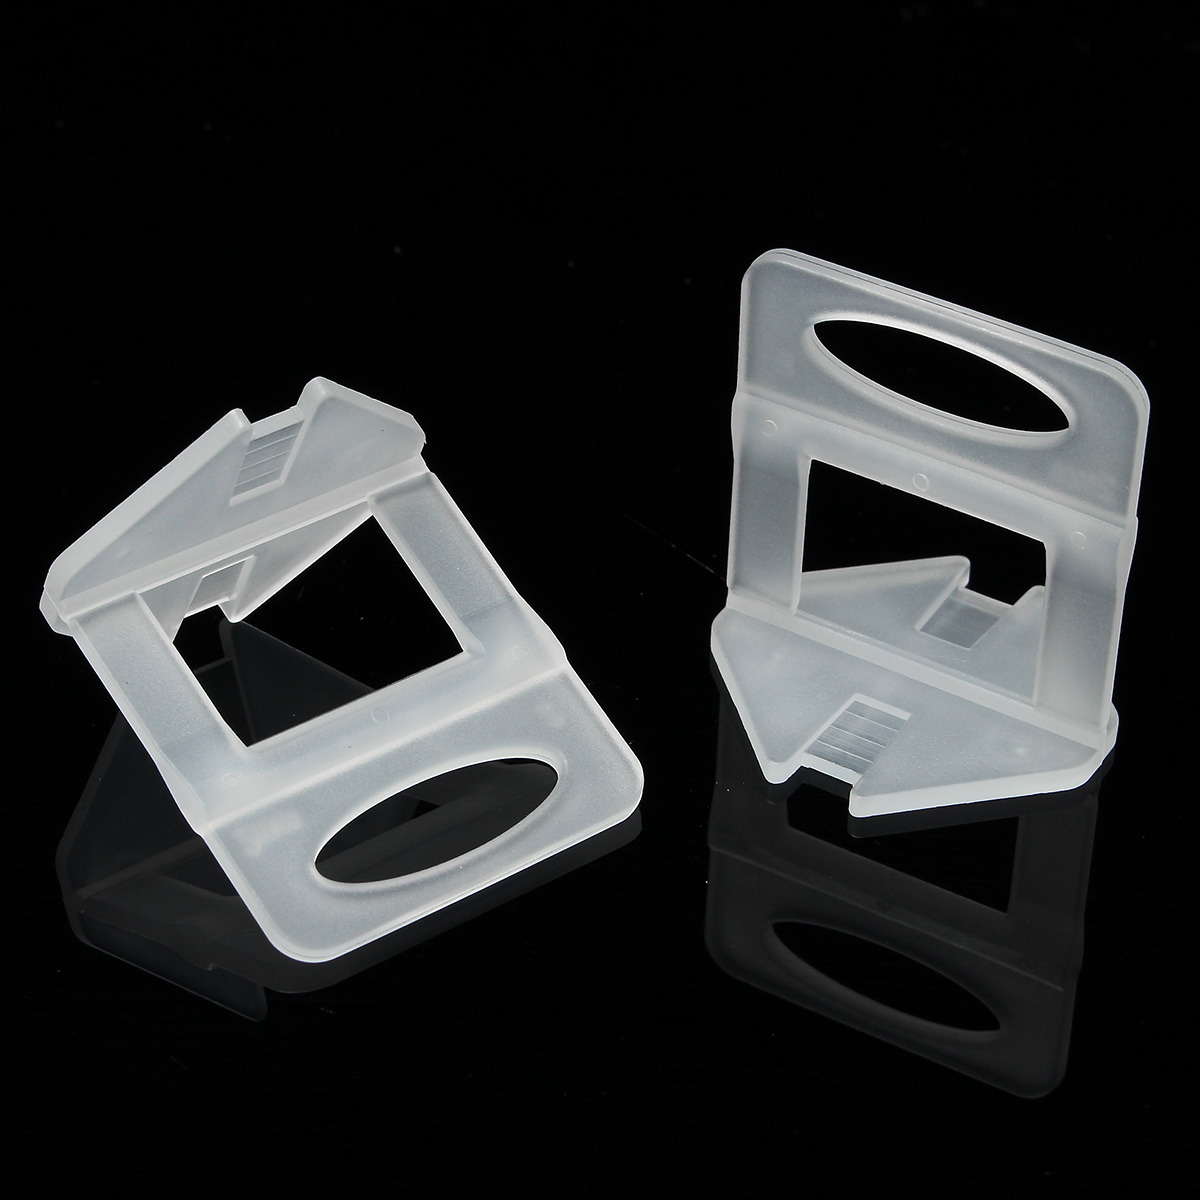 100pcs 2mm Tile Leveling System Spacers Plastic For Home Floor